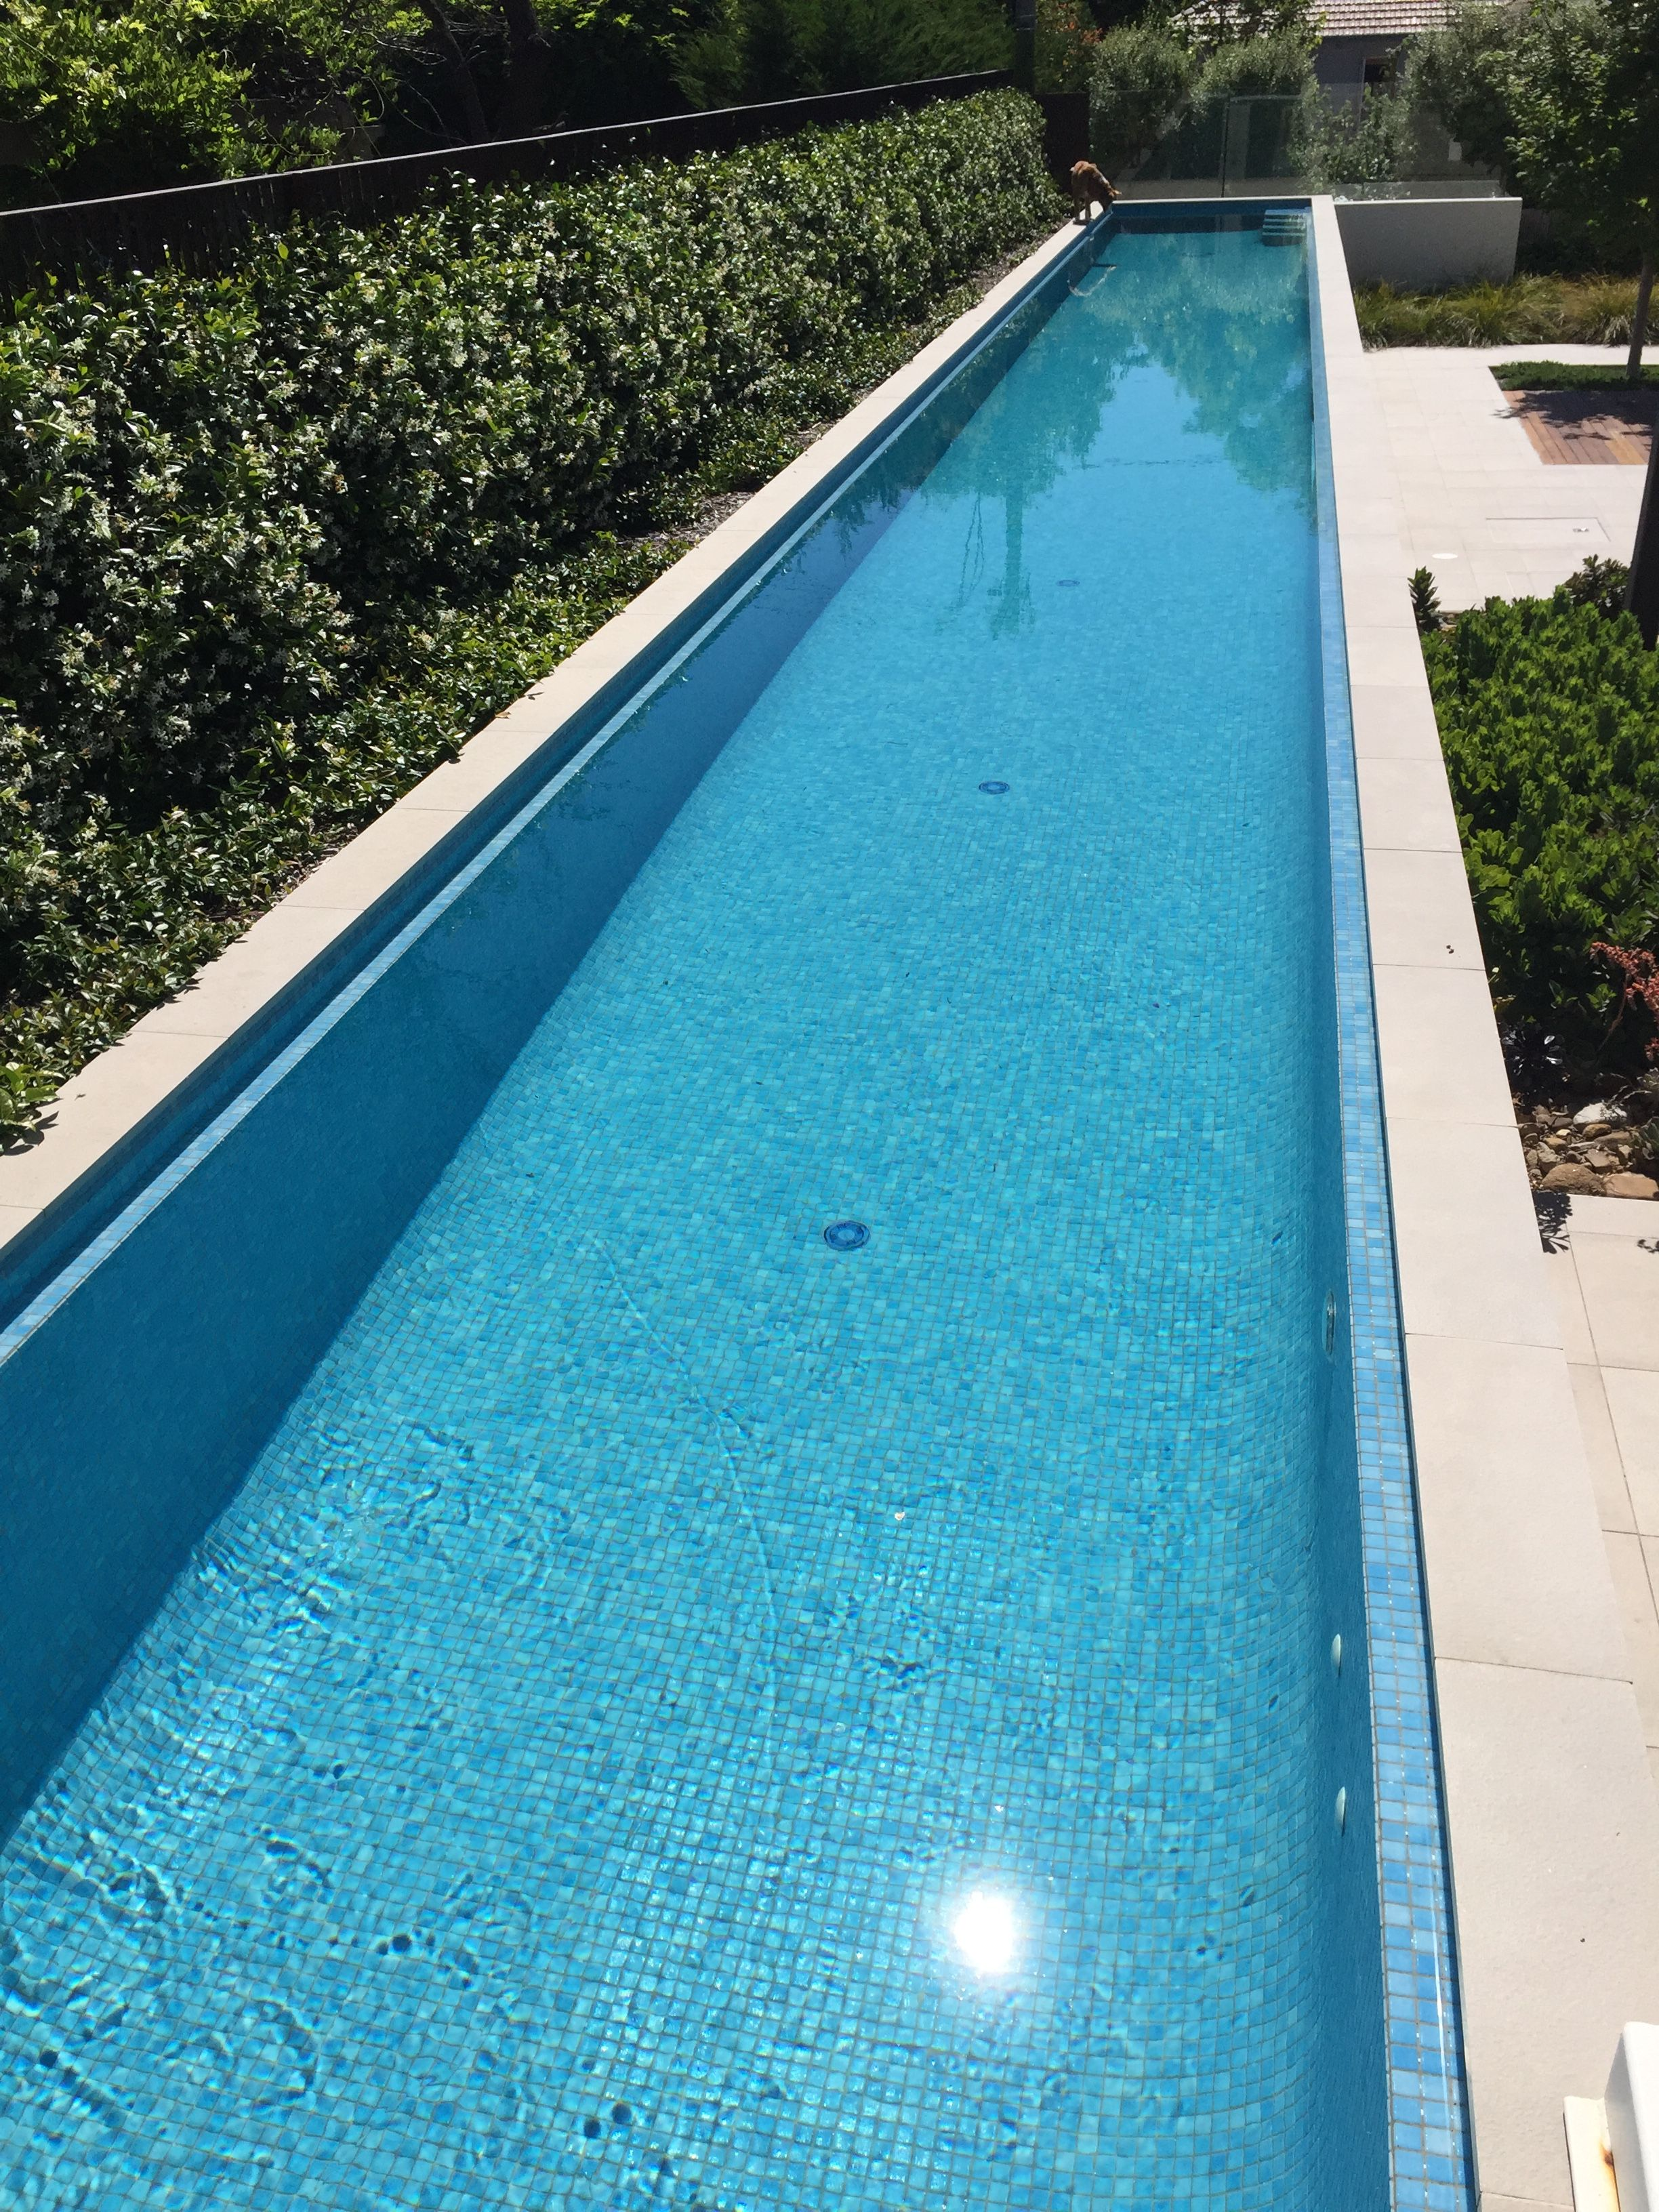 Above Ground 25m Lap Pool With Landscaping Jasmine Hedge Is Ideal Near Pool As Very Little Le Backyard Pool Landscaping Dream Pool Indoor Garden Swimming Pool